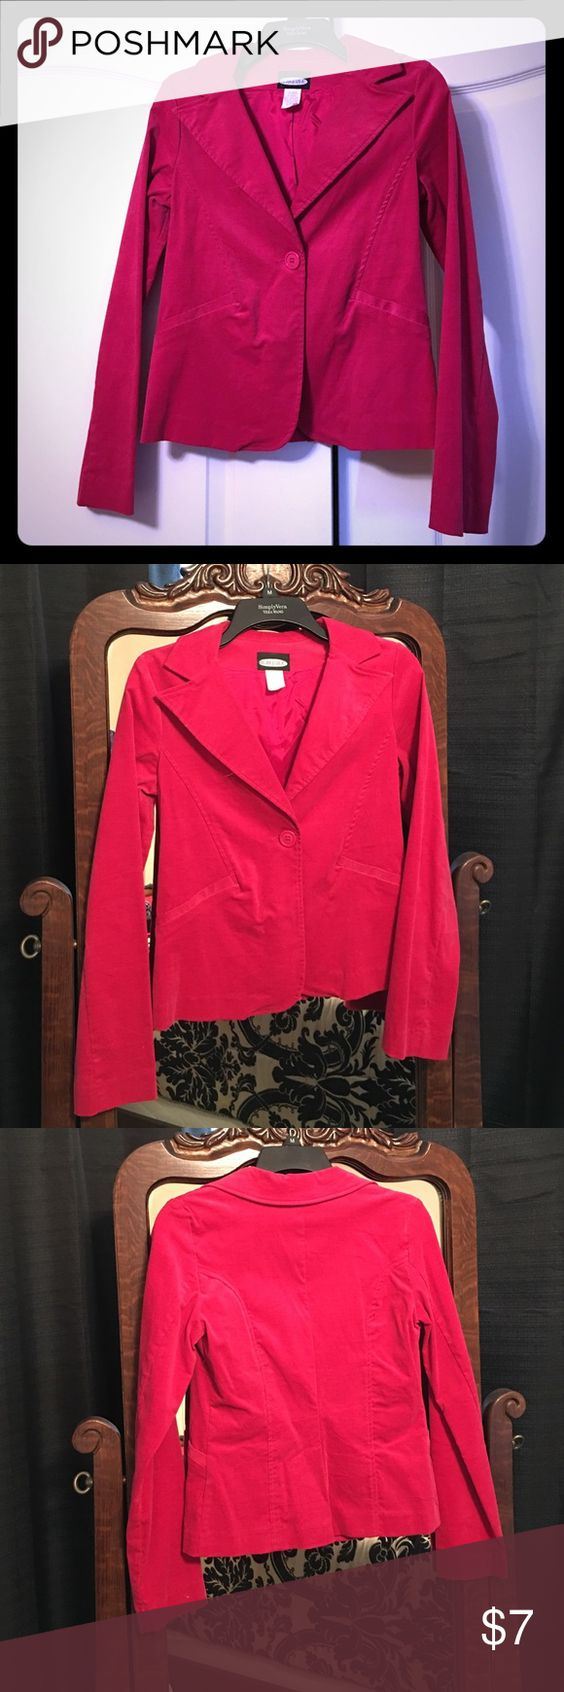 Medium, hot pink 1 button suit jacket. Suit Jacket By WearEver, HotPink, Size Medium, Dry Clean Only, corduroy type material, 1 large button, 3%spandex, 97% cotton #sizeMedium #medium #drycleanonly #suitjacket #jacket #HotPink #wearEver #casual #business #spring #winter #summer #fall #businesswear #BossLady #workwear WearEver Jackets & Coats Blazers